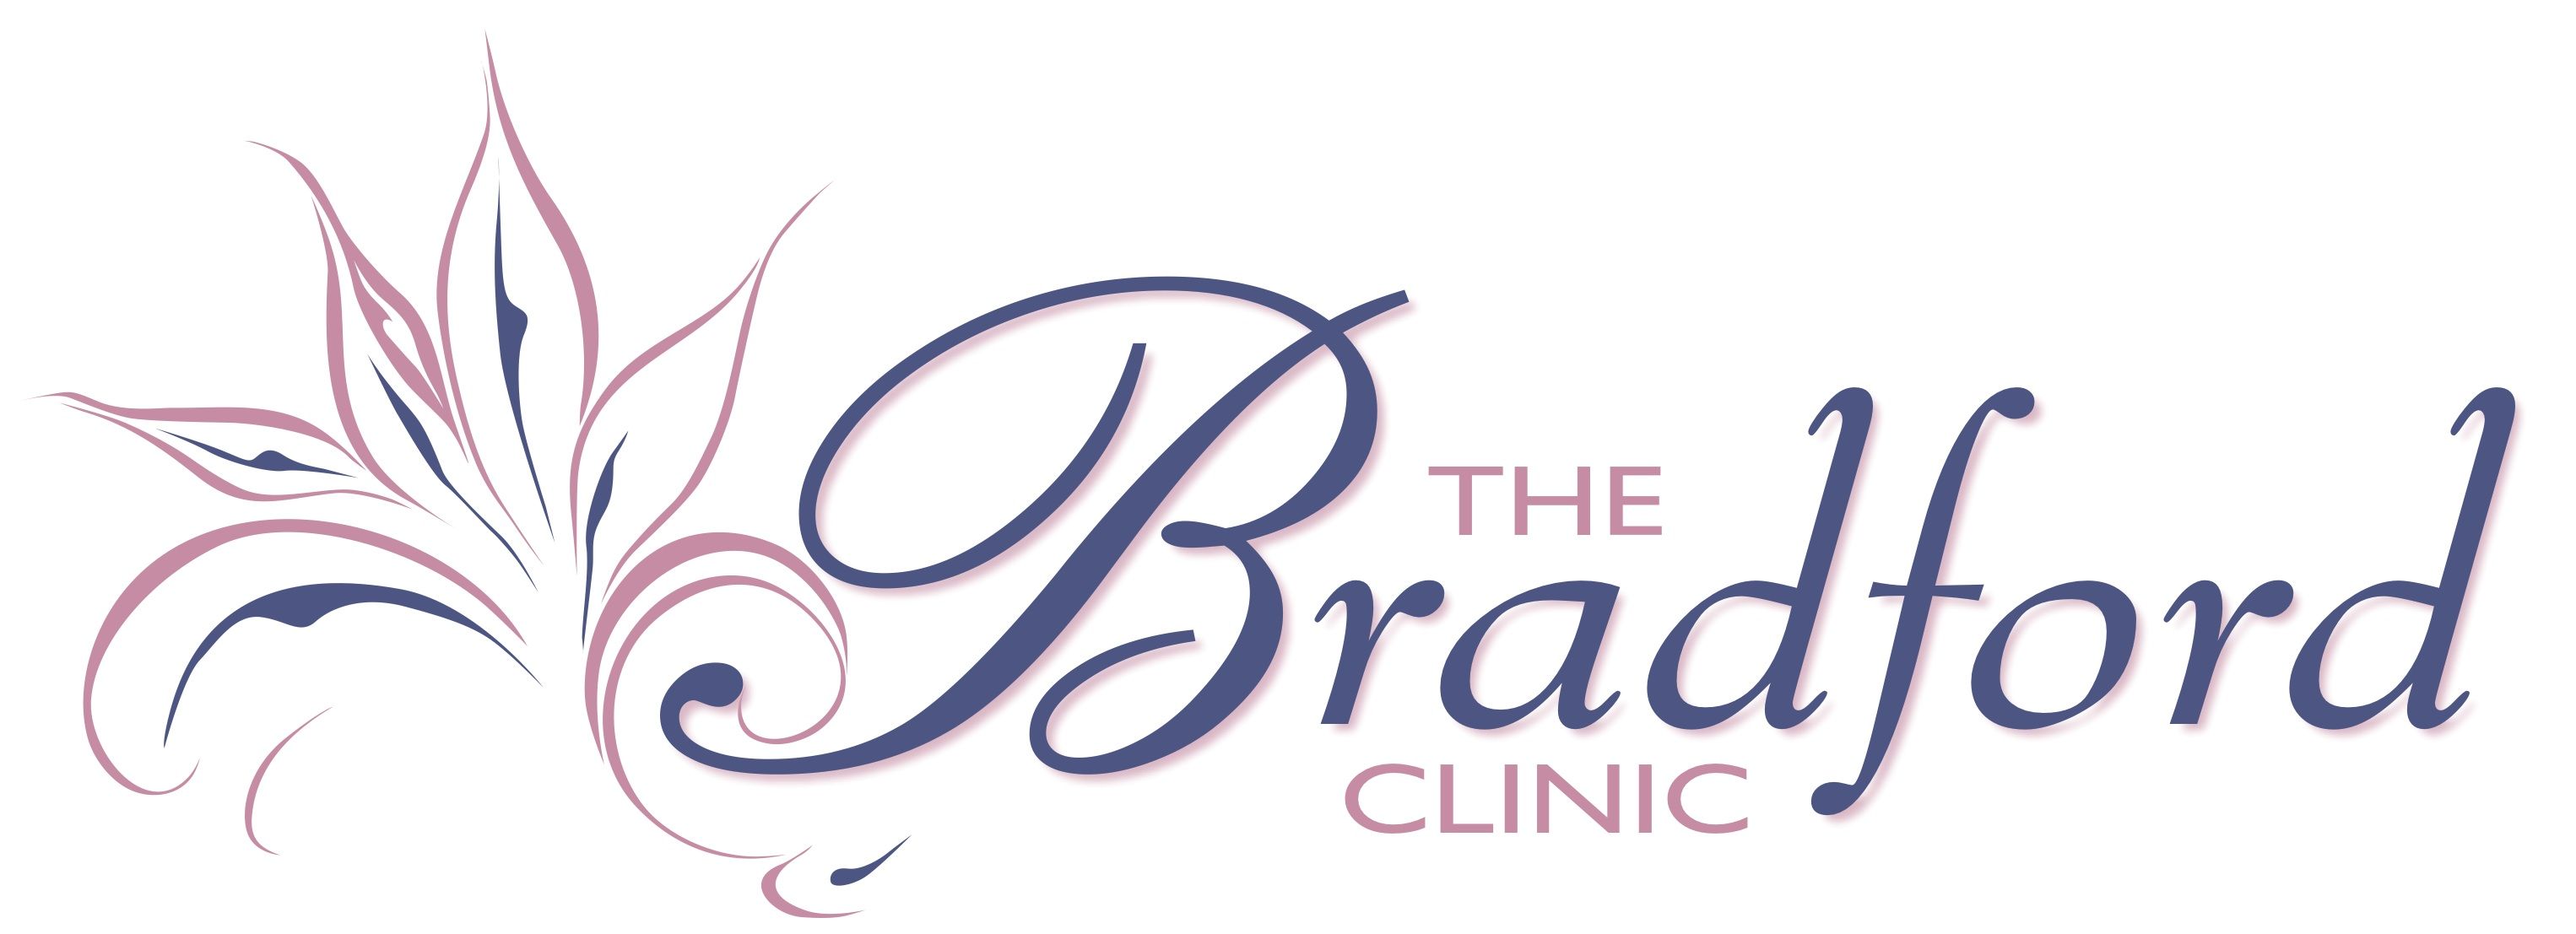 The Bradford Clinic - Toowoomba